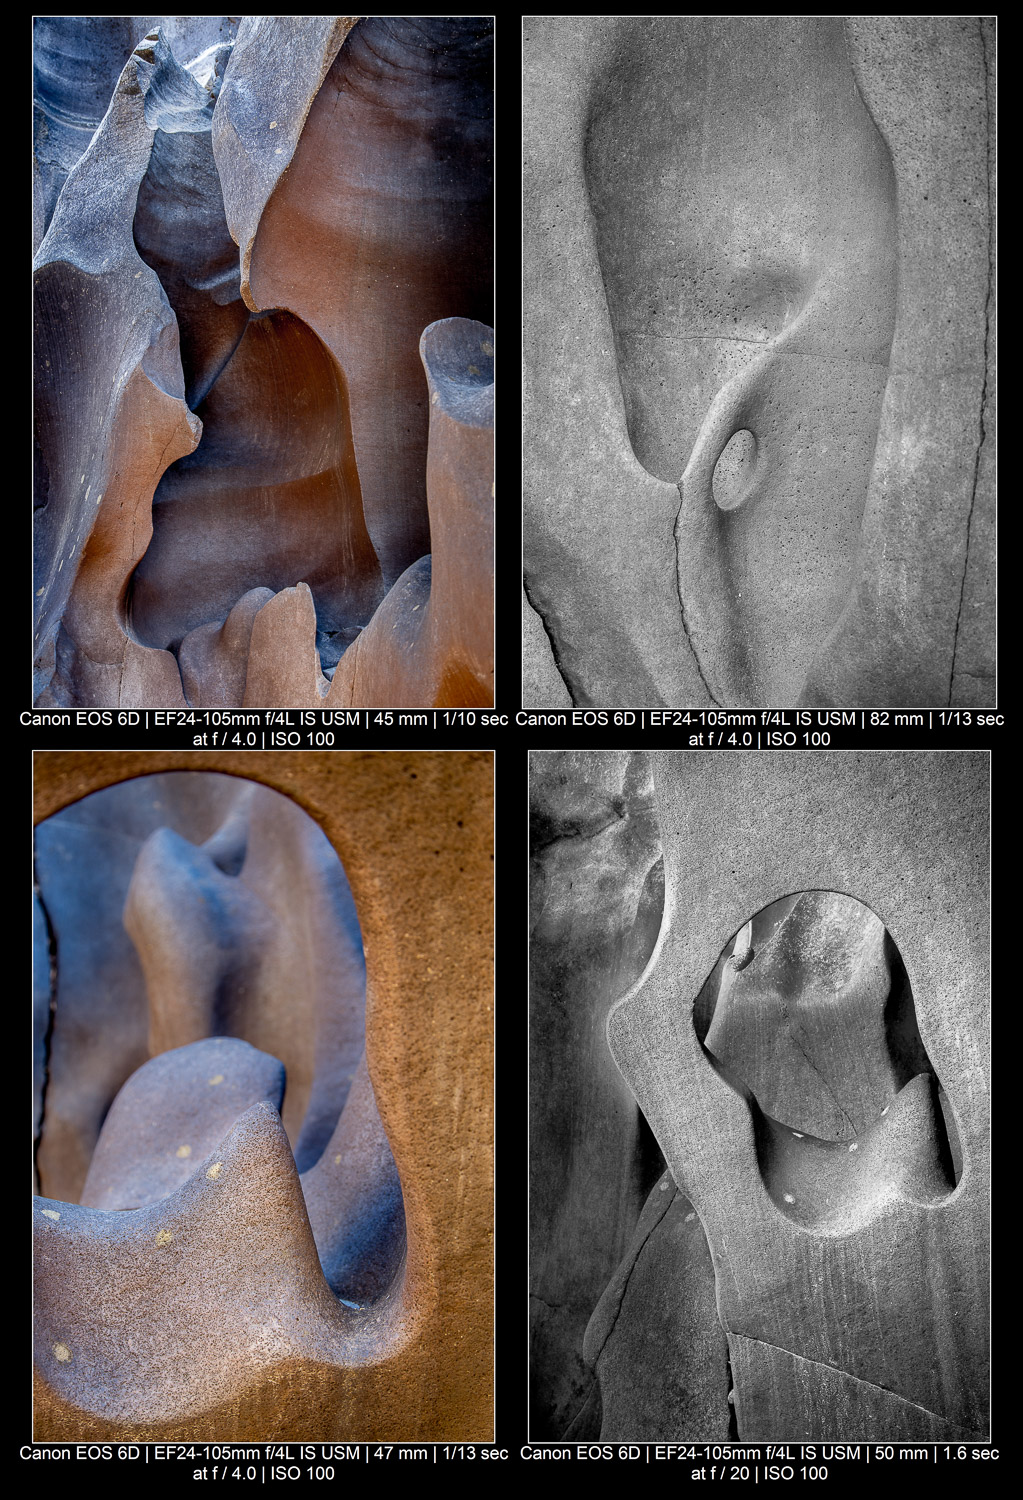 abstract compositions of rock sculptures